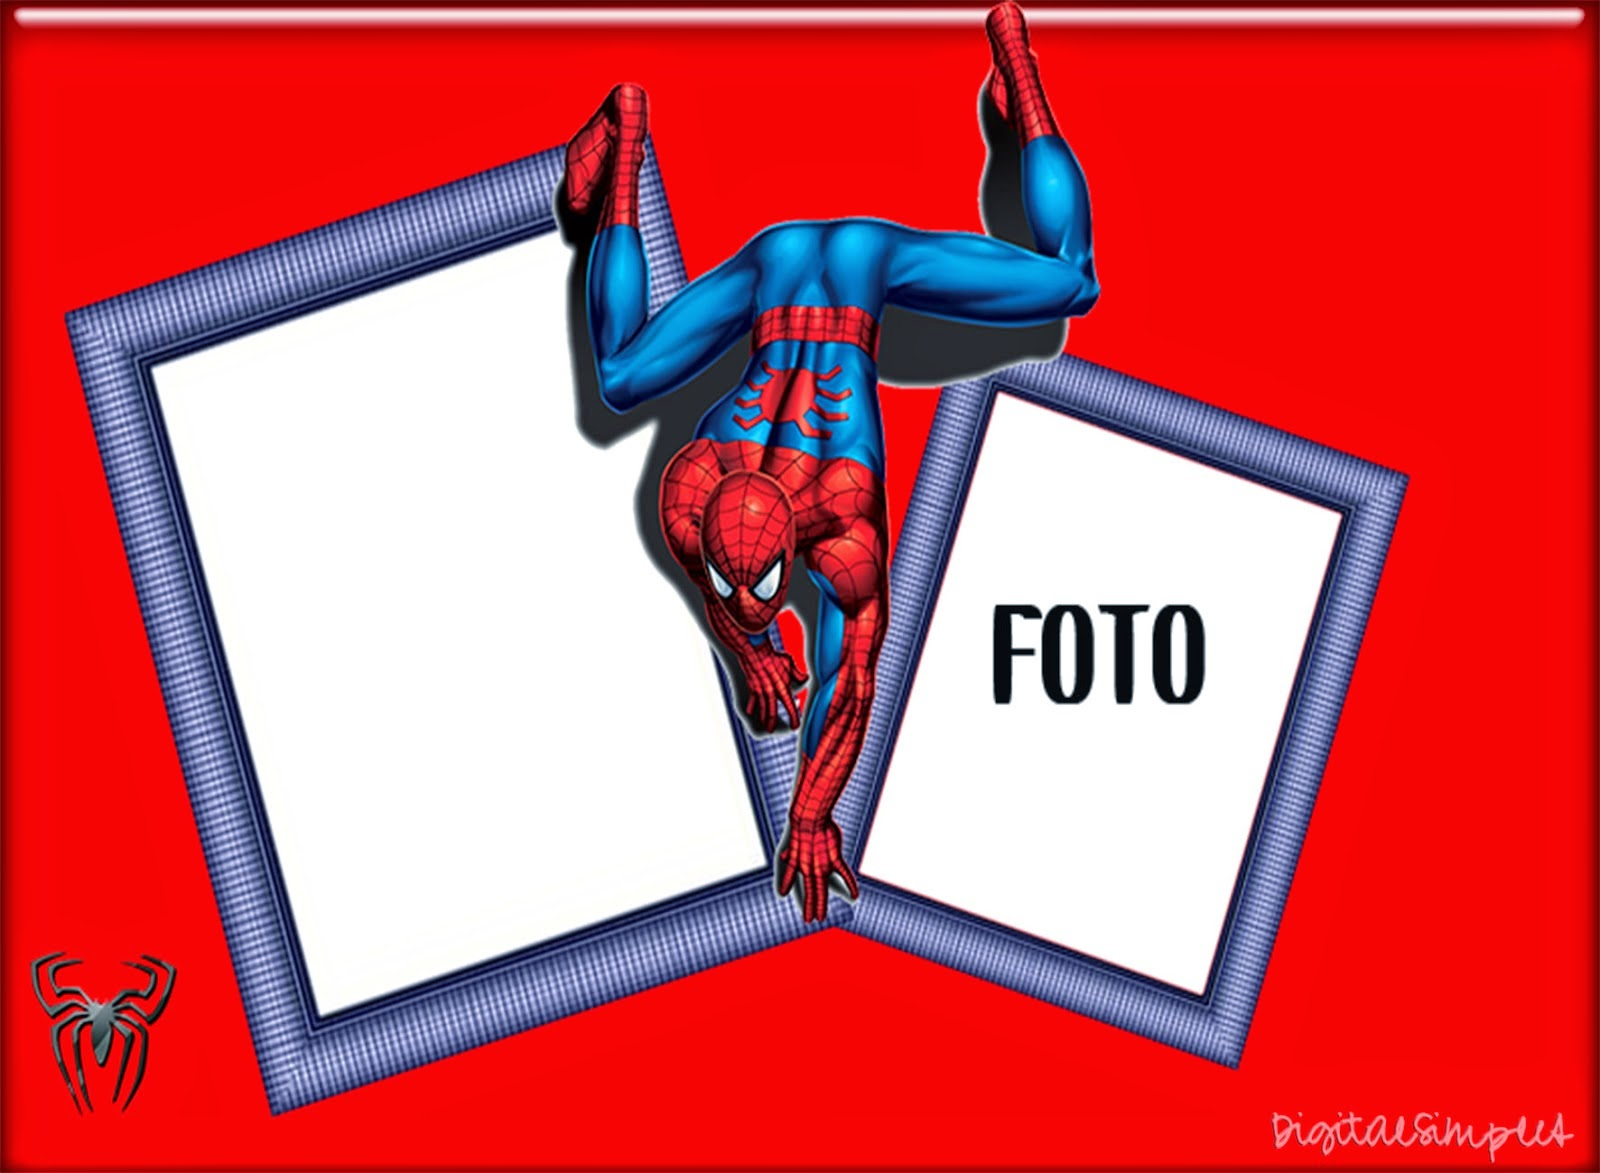 Spiderman Free Printable Invitations, Cards or Photo Frames Oh My Fiesta! for Geeks